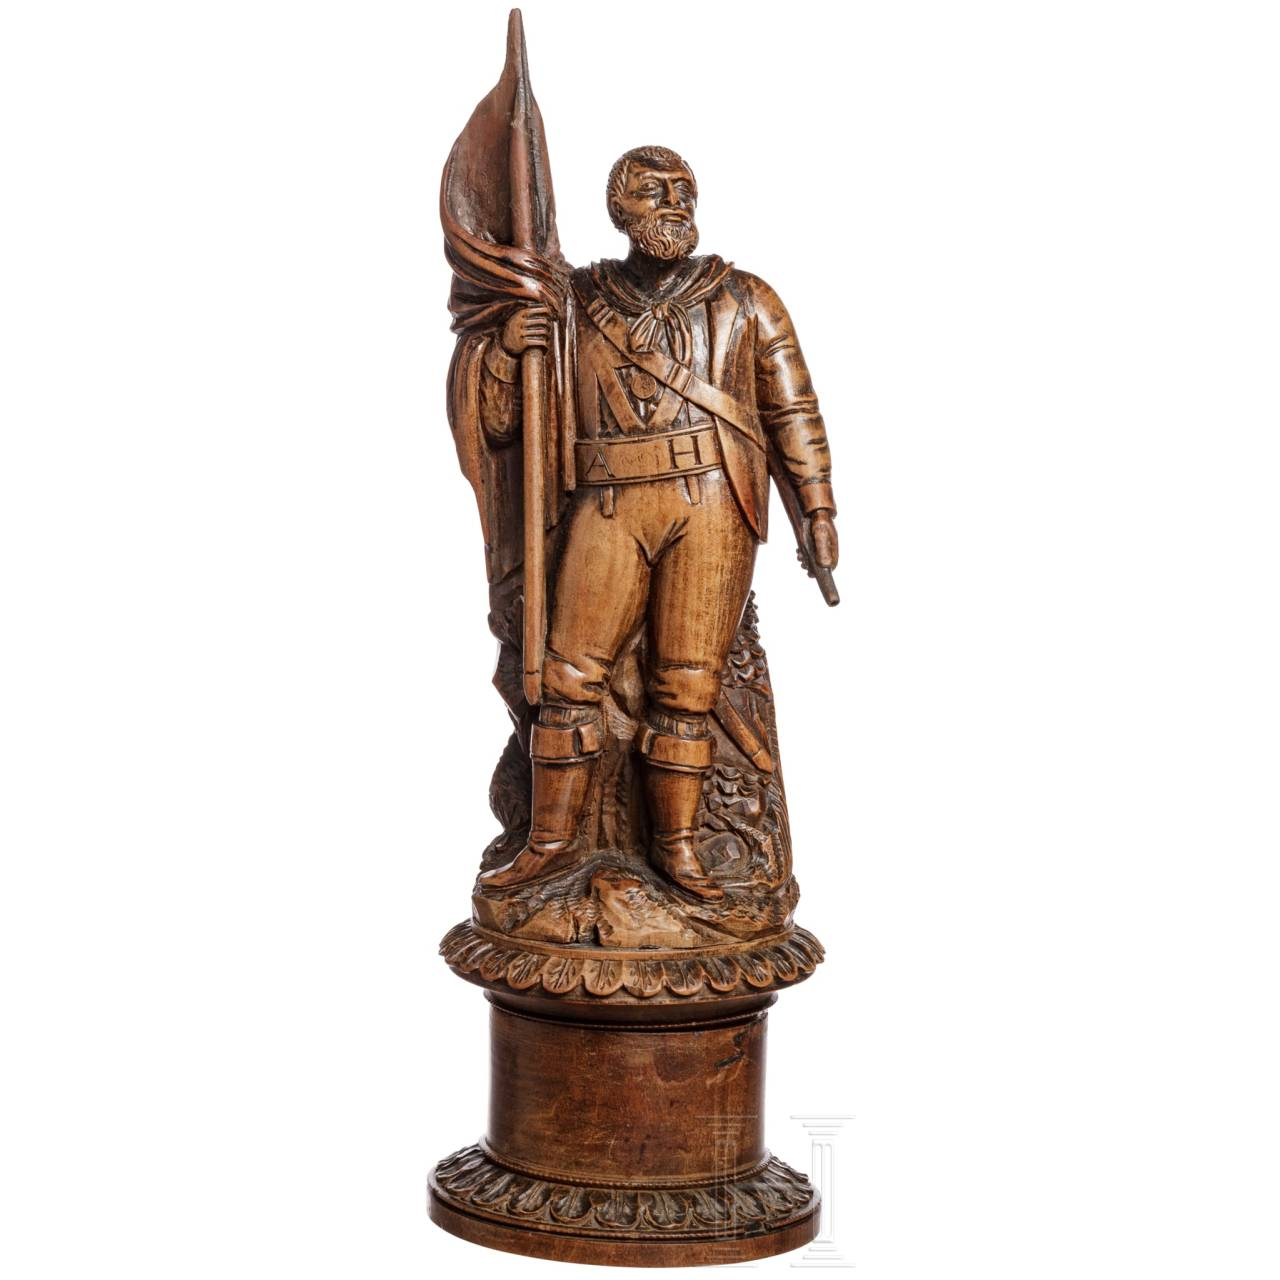 Wooden box with the figure of Andreas Hofer, early 19th century